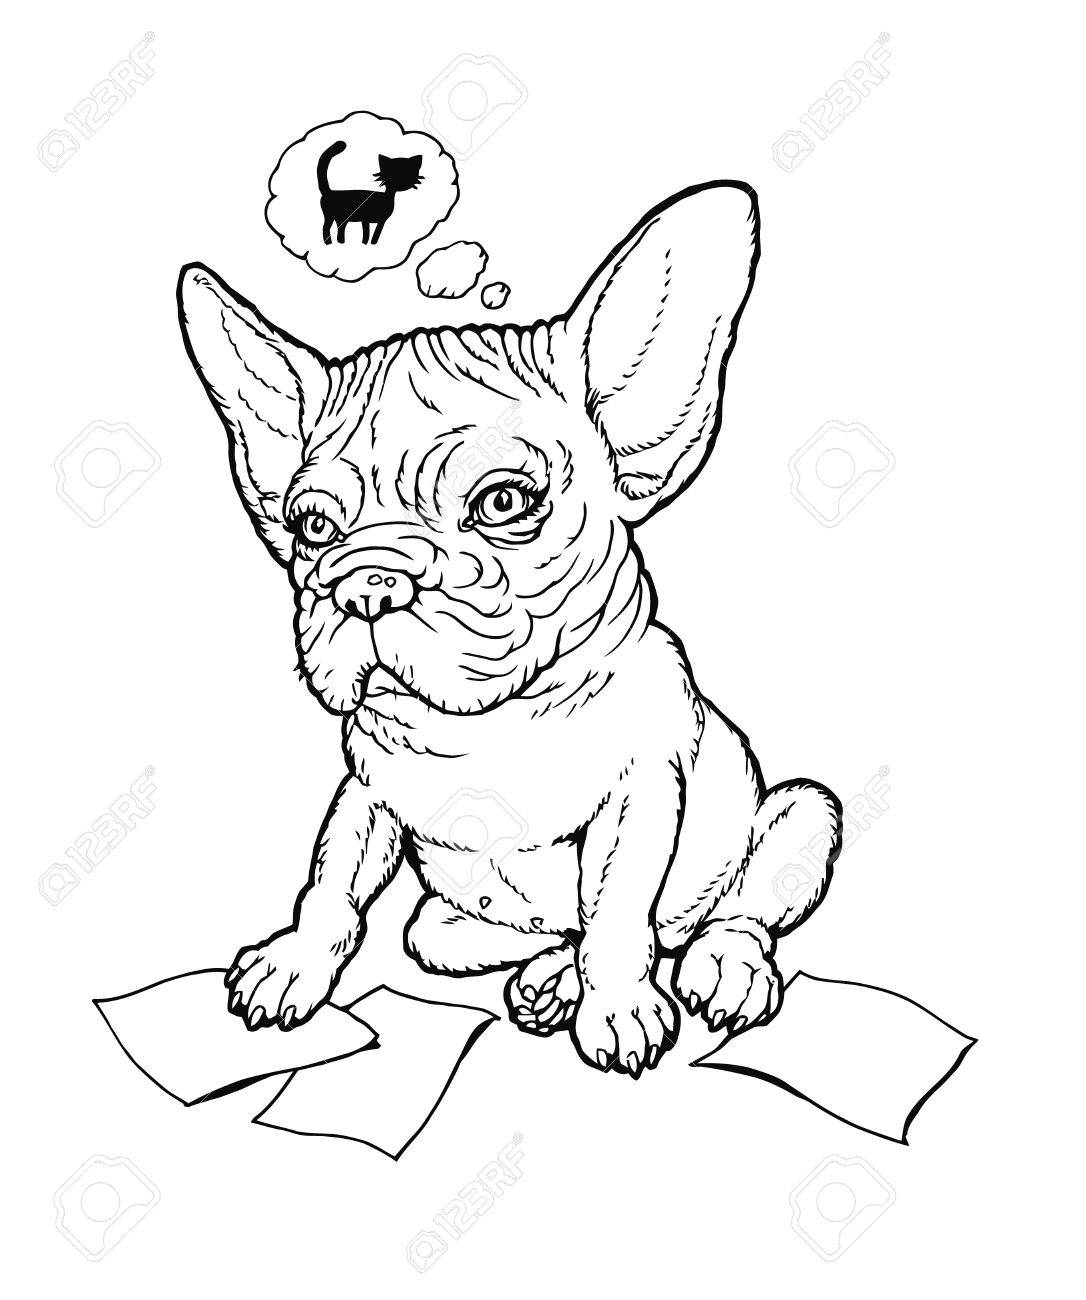 1086x1300 Black And White Line Drawing Plump French Bulldog Puppy Thinking